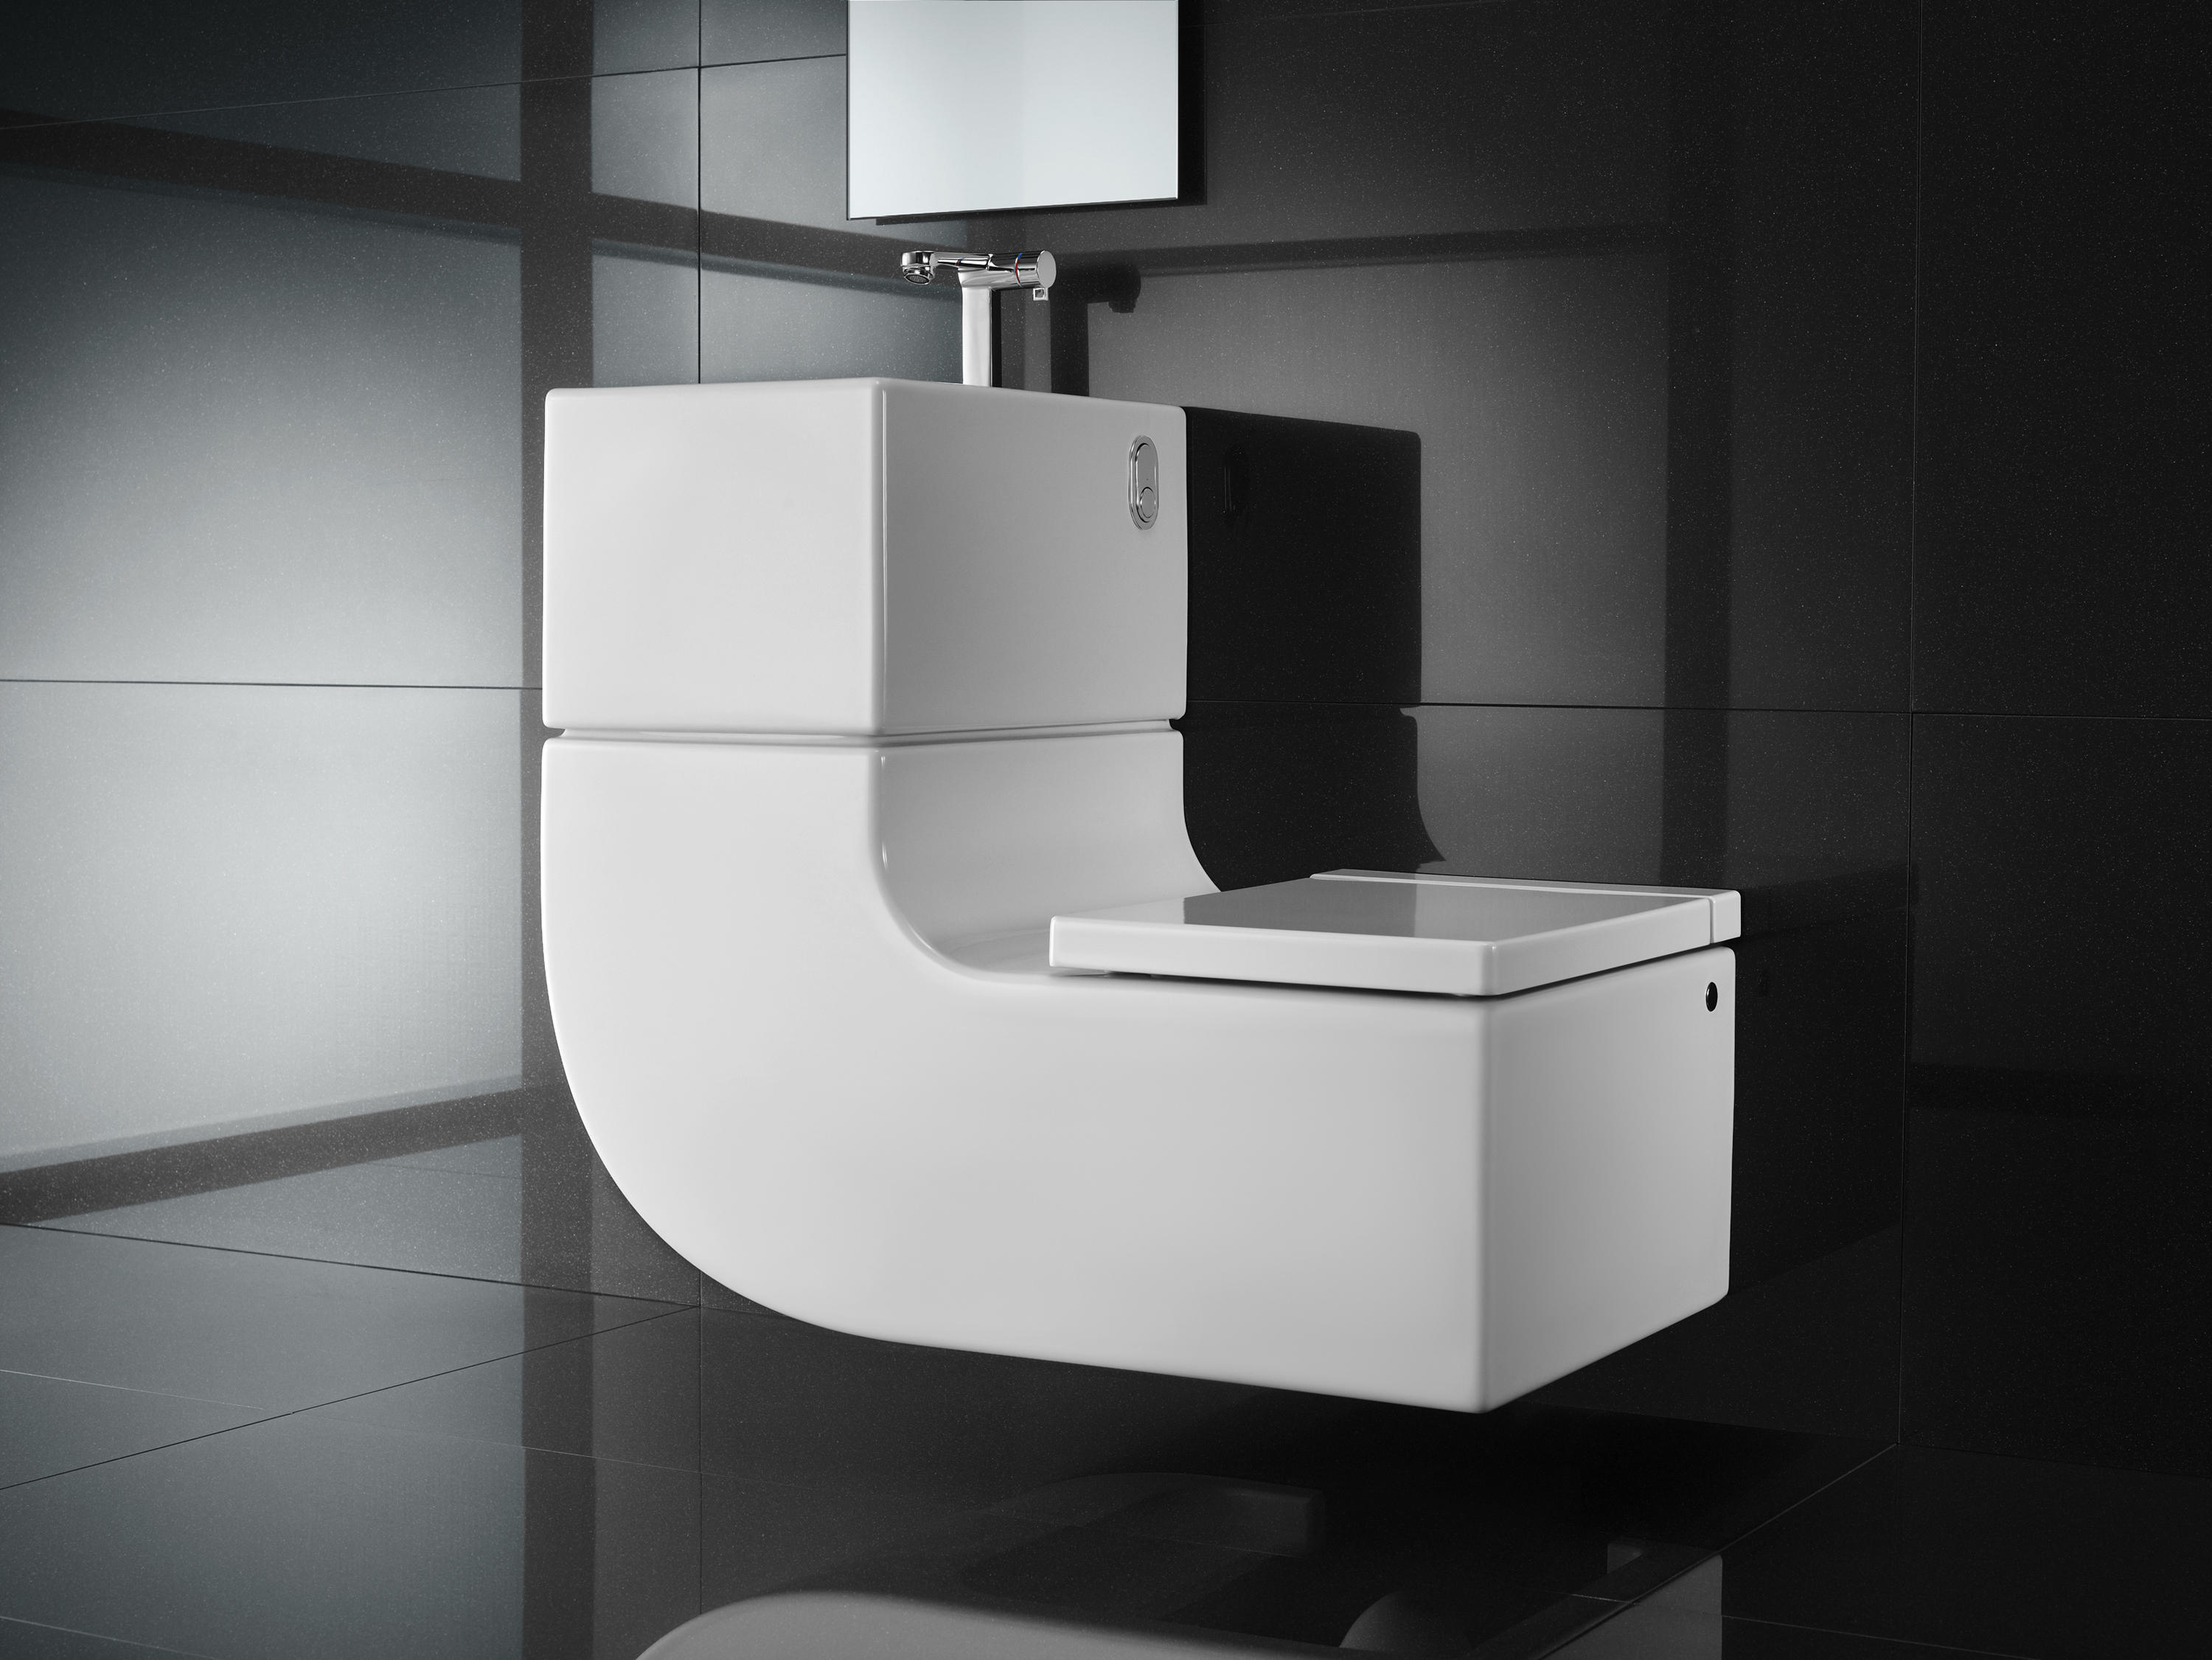 W w washbasin wc toilets from roca architonic for Marcas de retretes